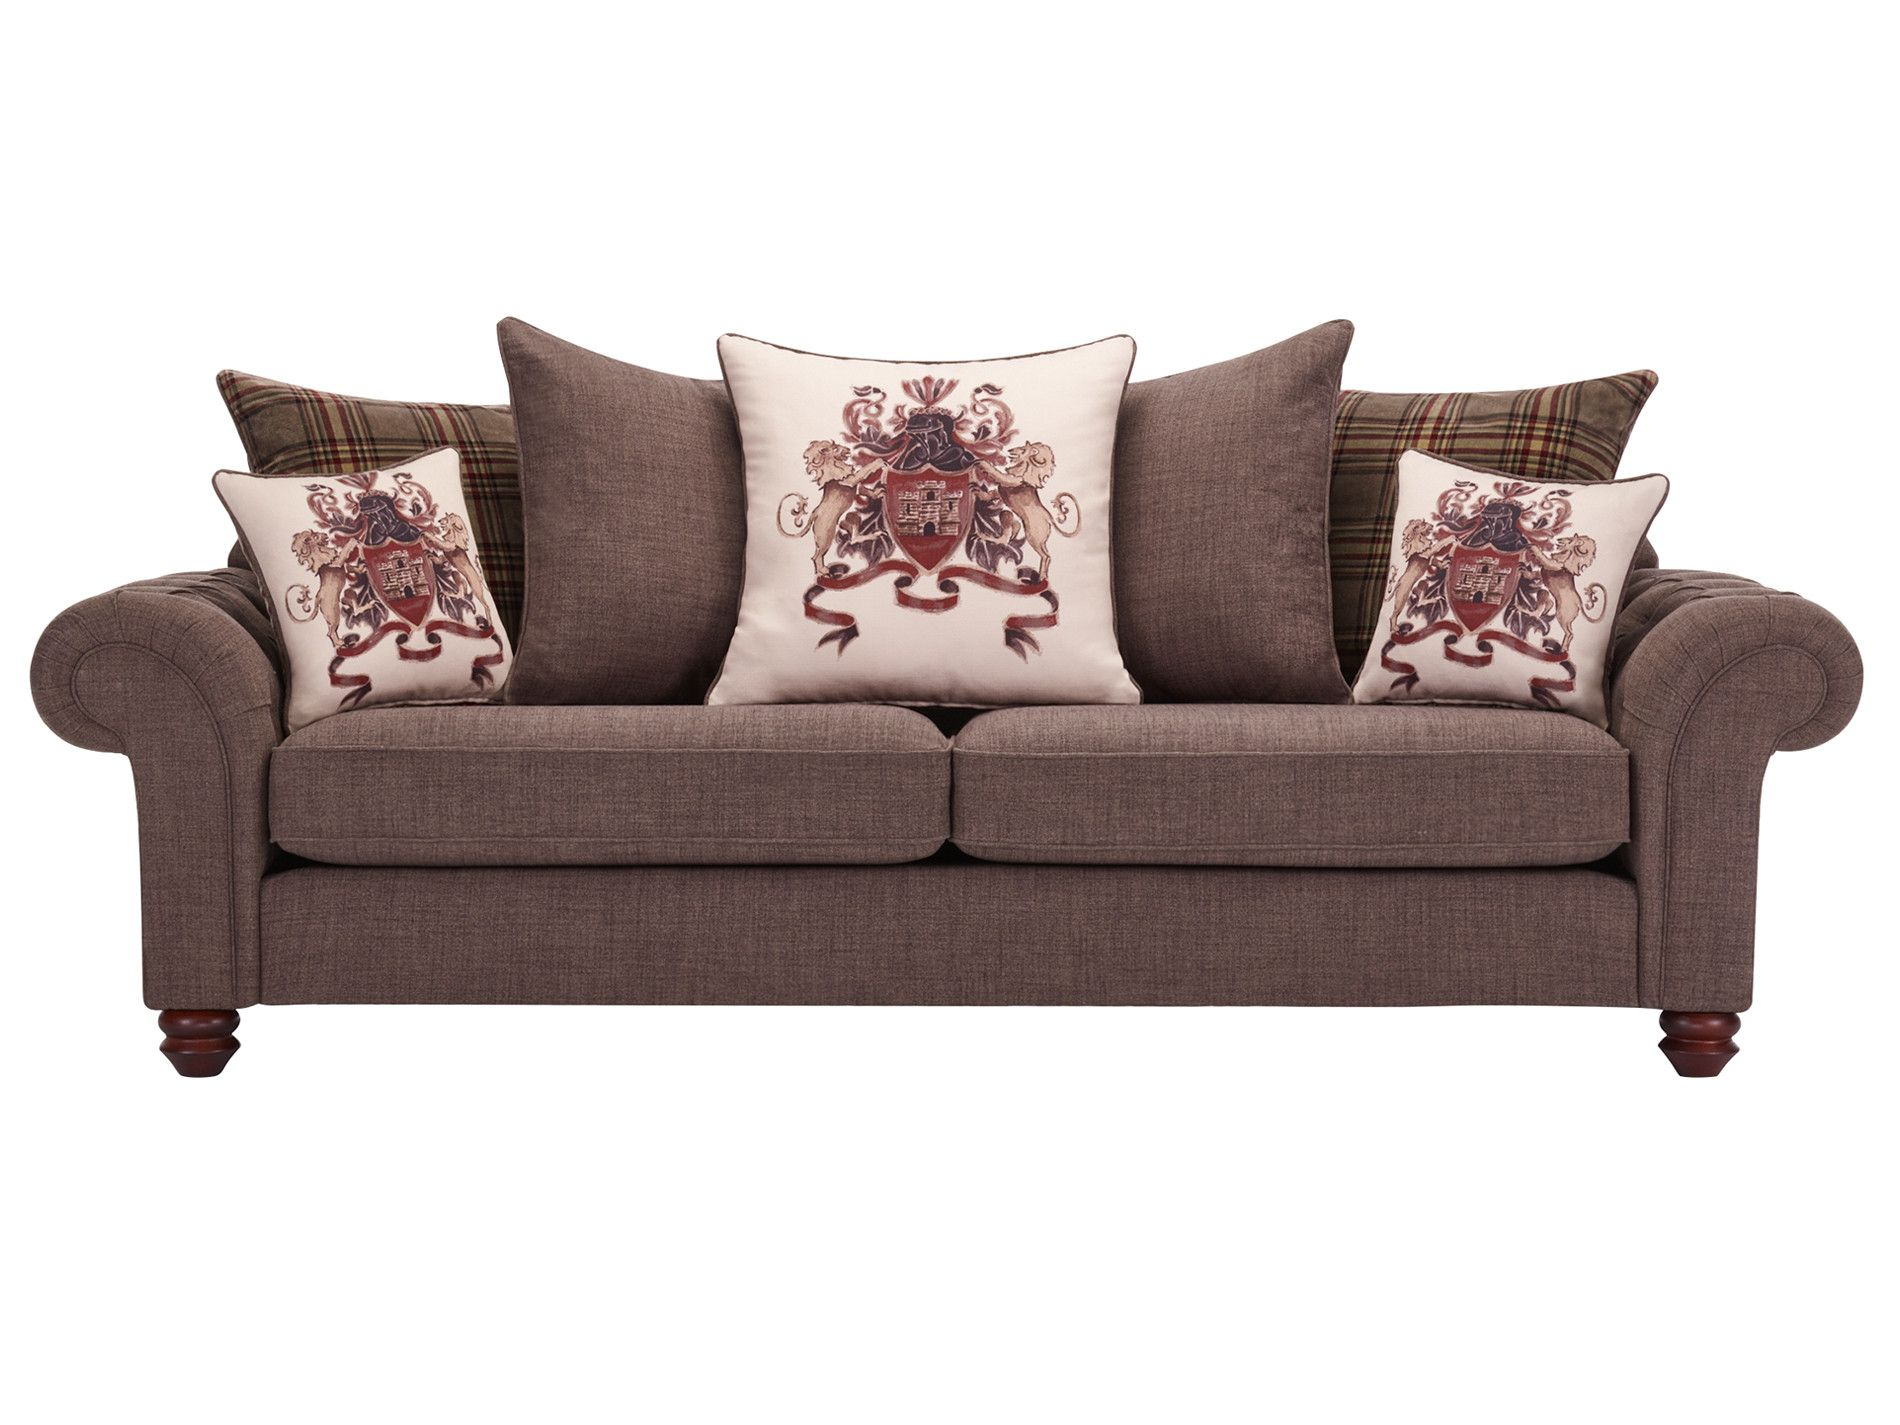 Best Sandringham 4 Seater Pillow Back Sofa In Brown With Beige 400 x 300